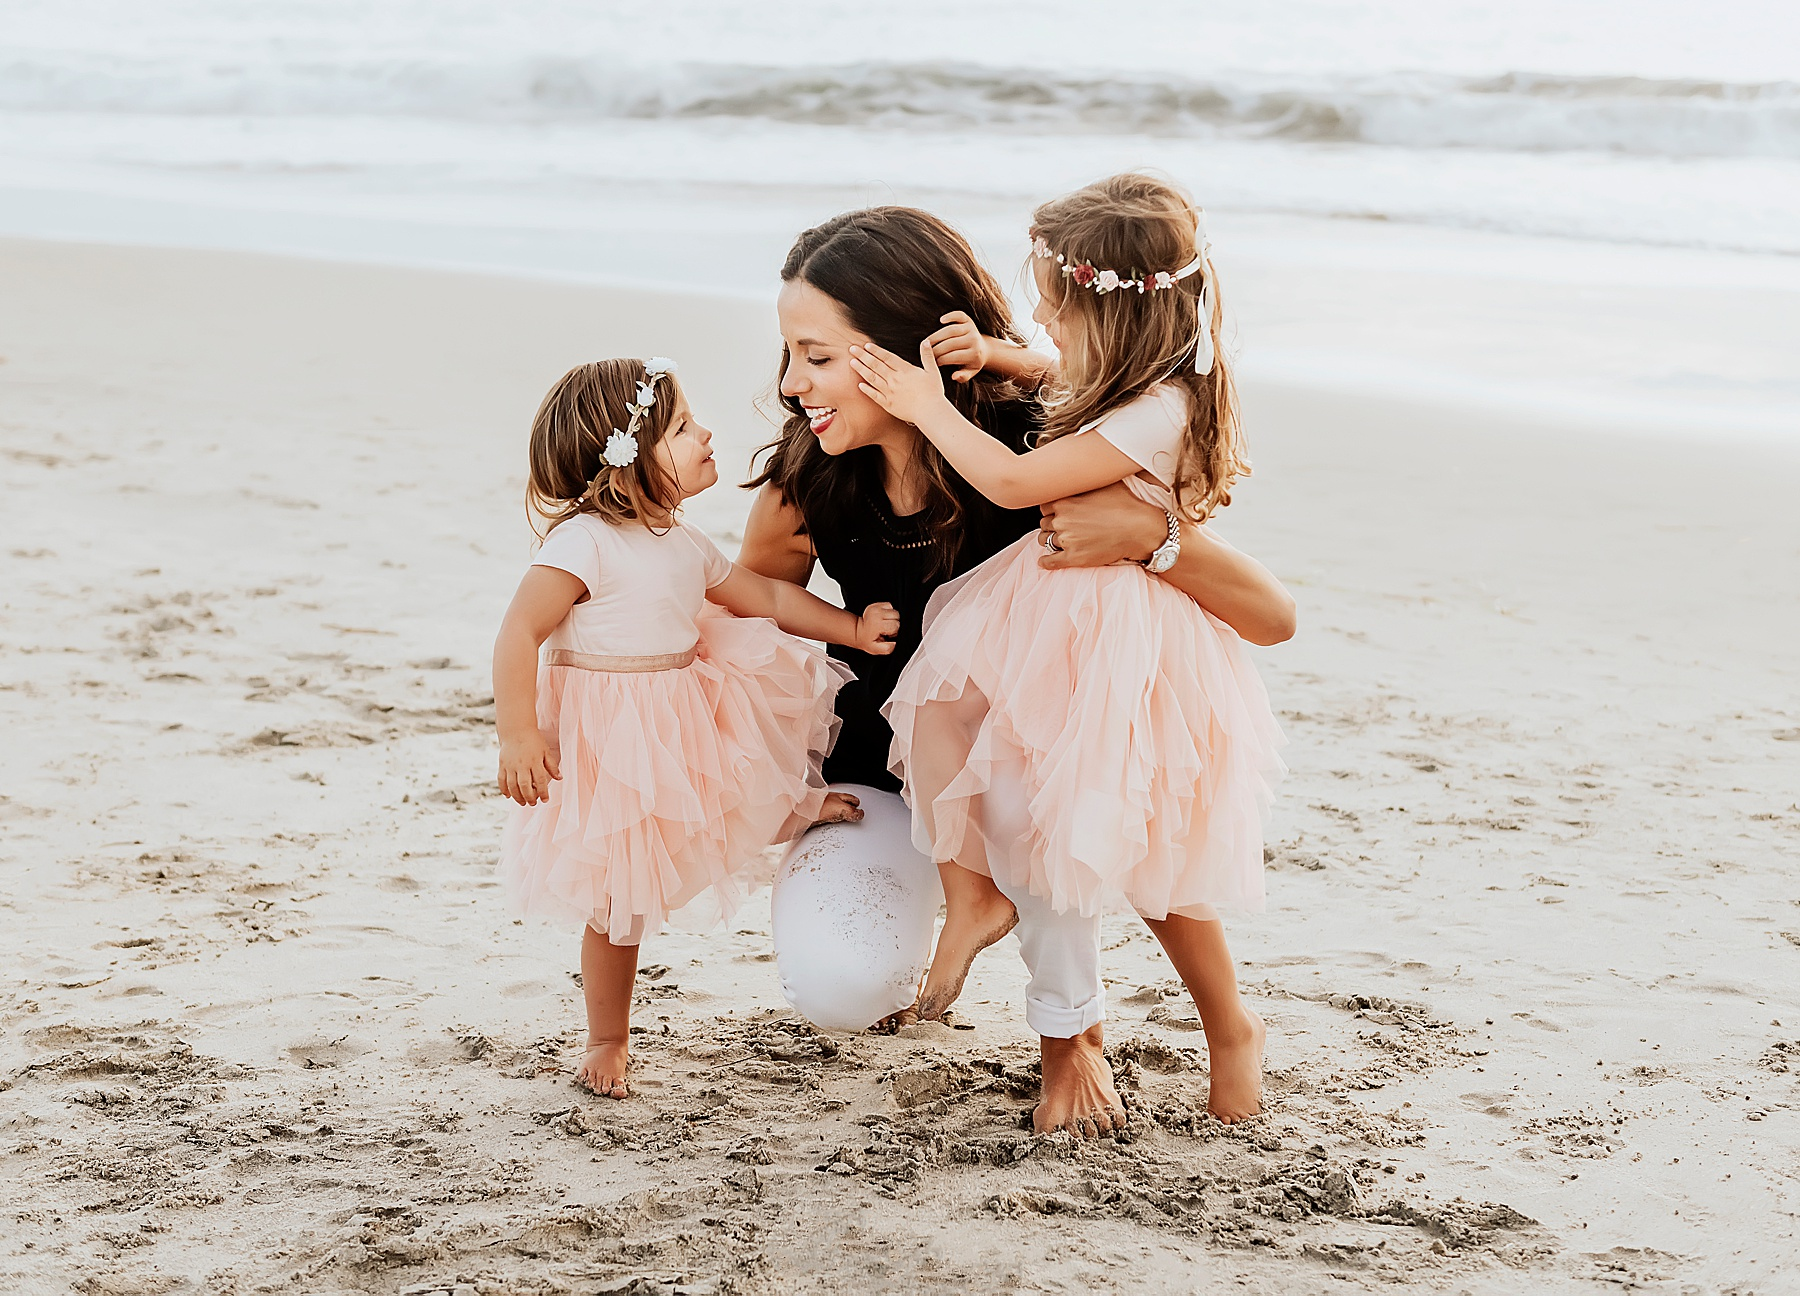 unique beach family photo ideas mom with daughters